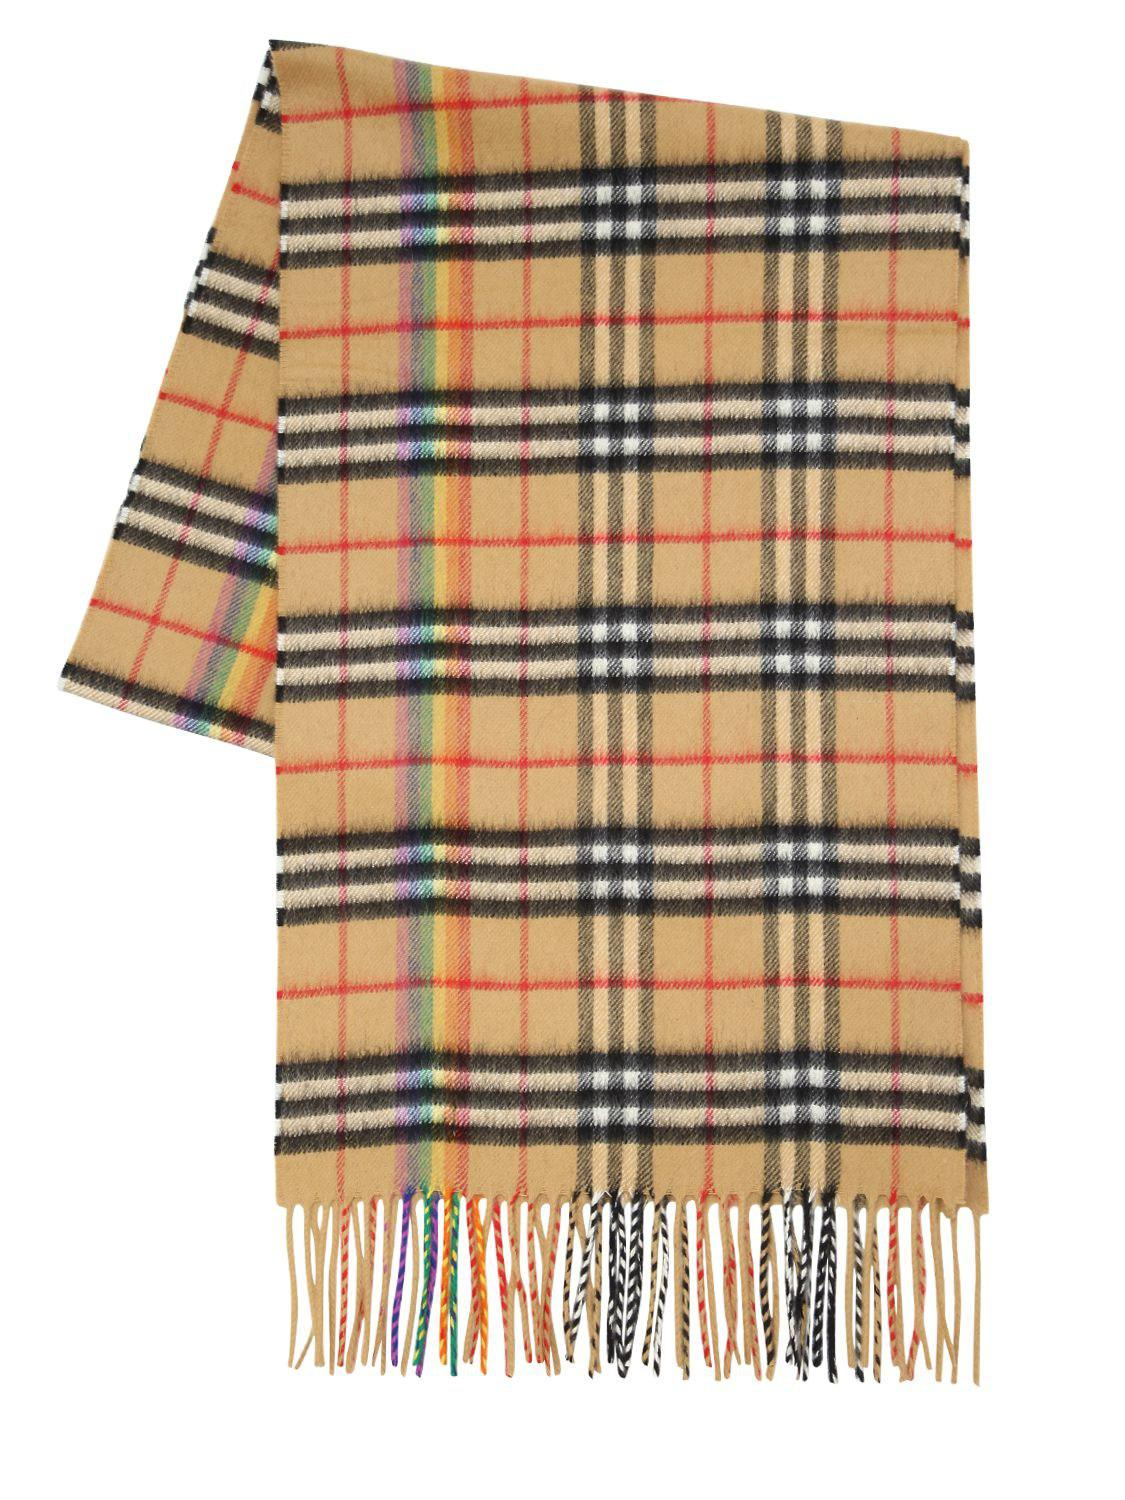 Burberry Giant Plaid Cashmere Scarf in Natural - Lyst 31940e9fffe84